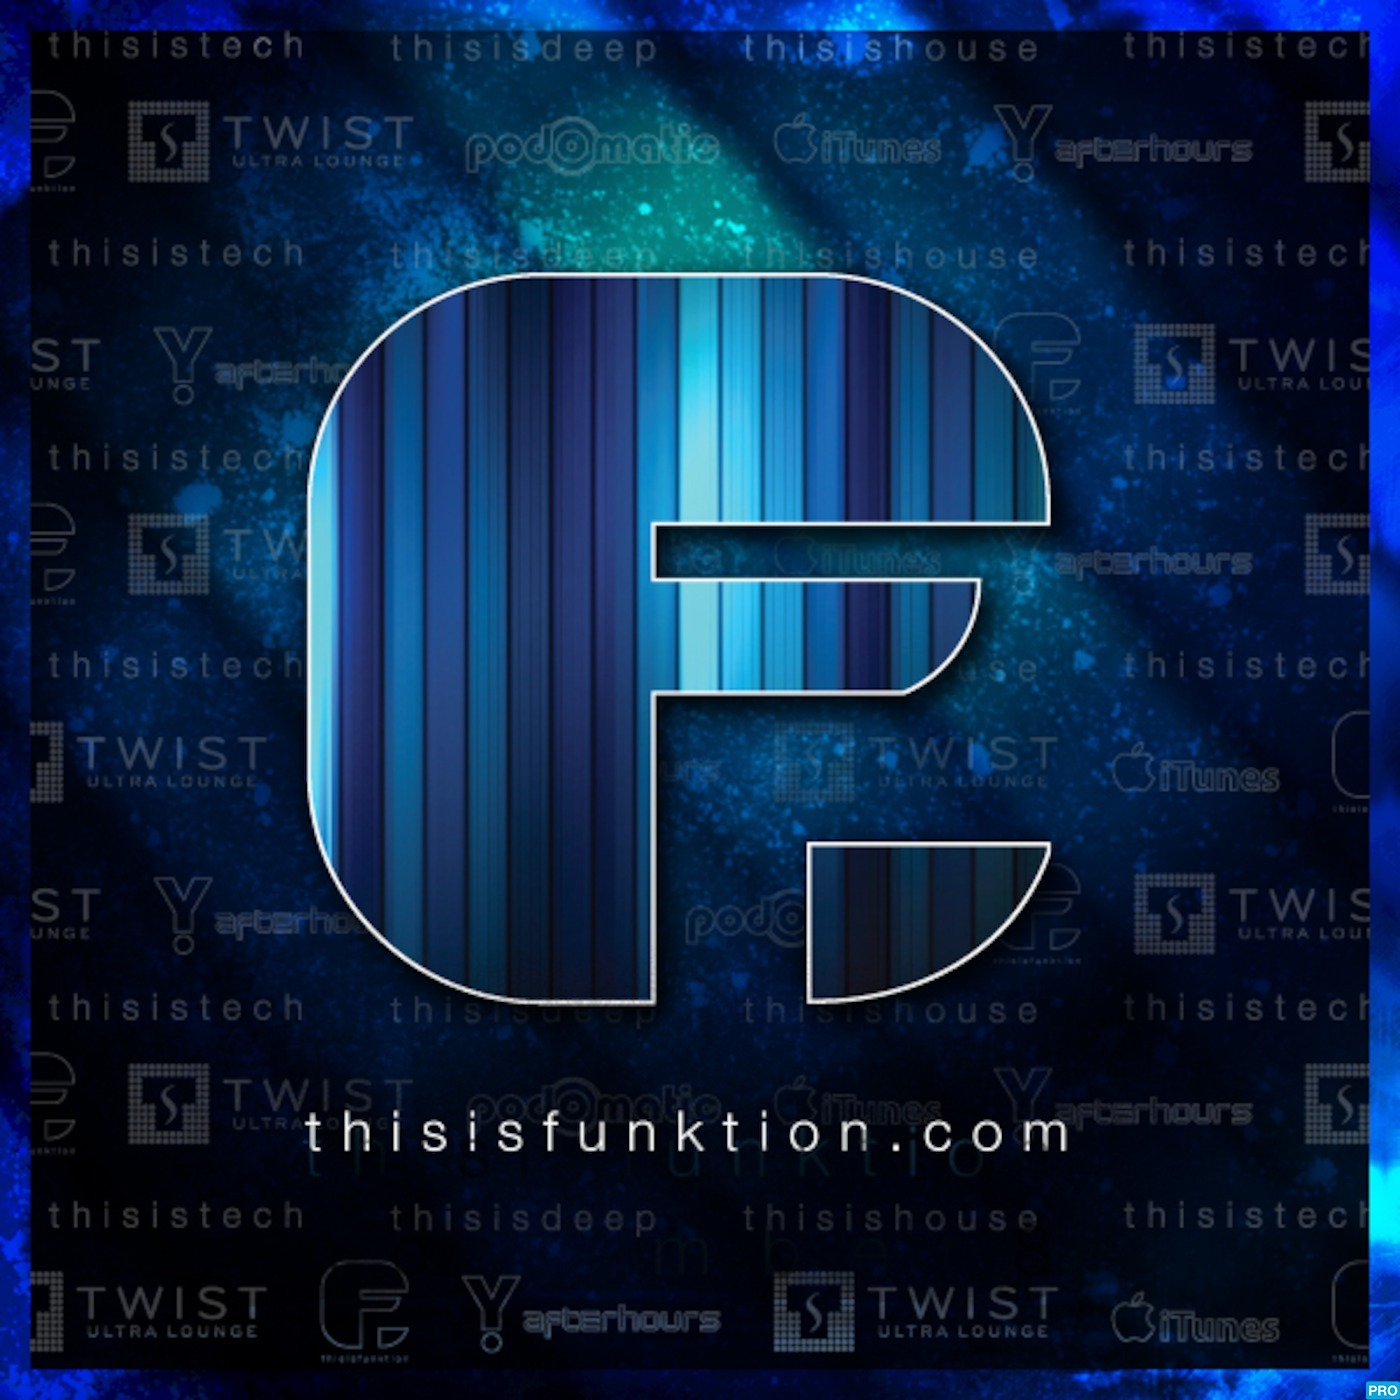 thisisfunktion